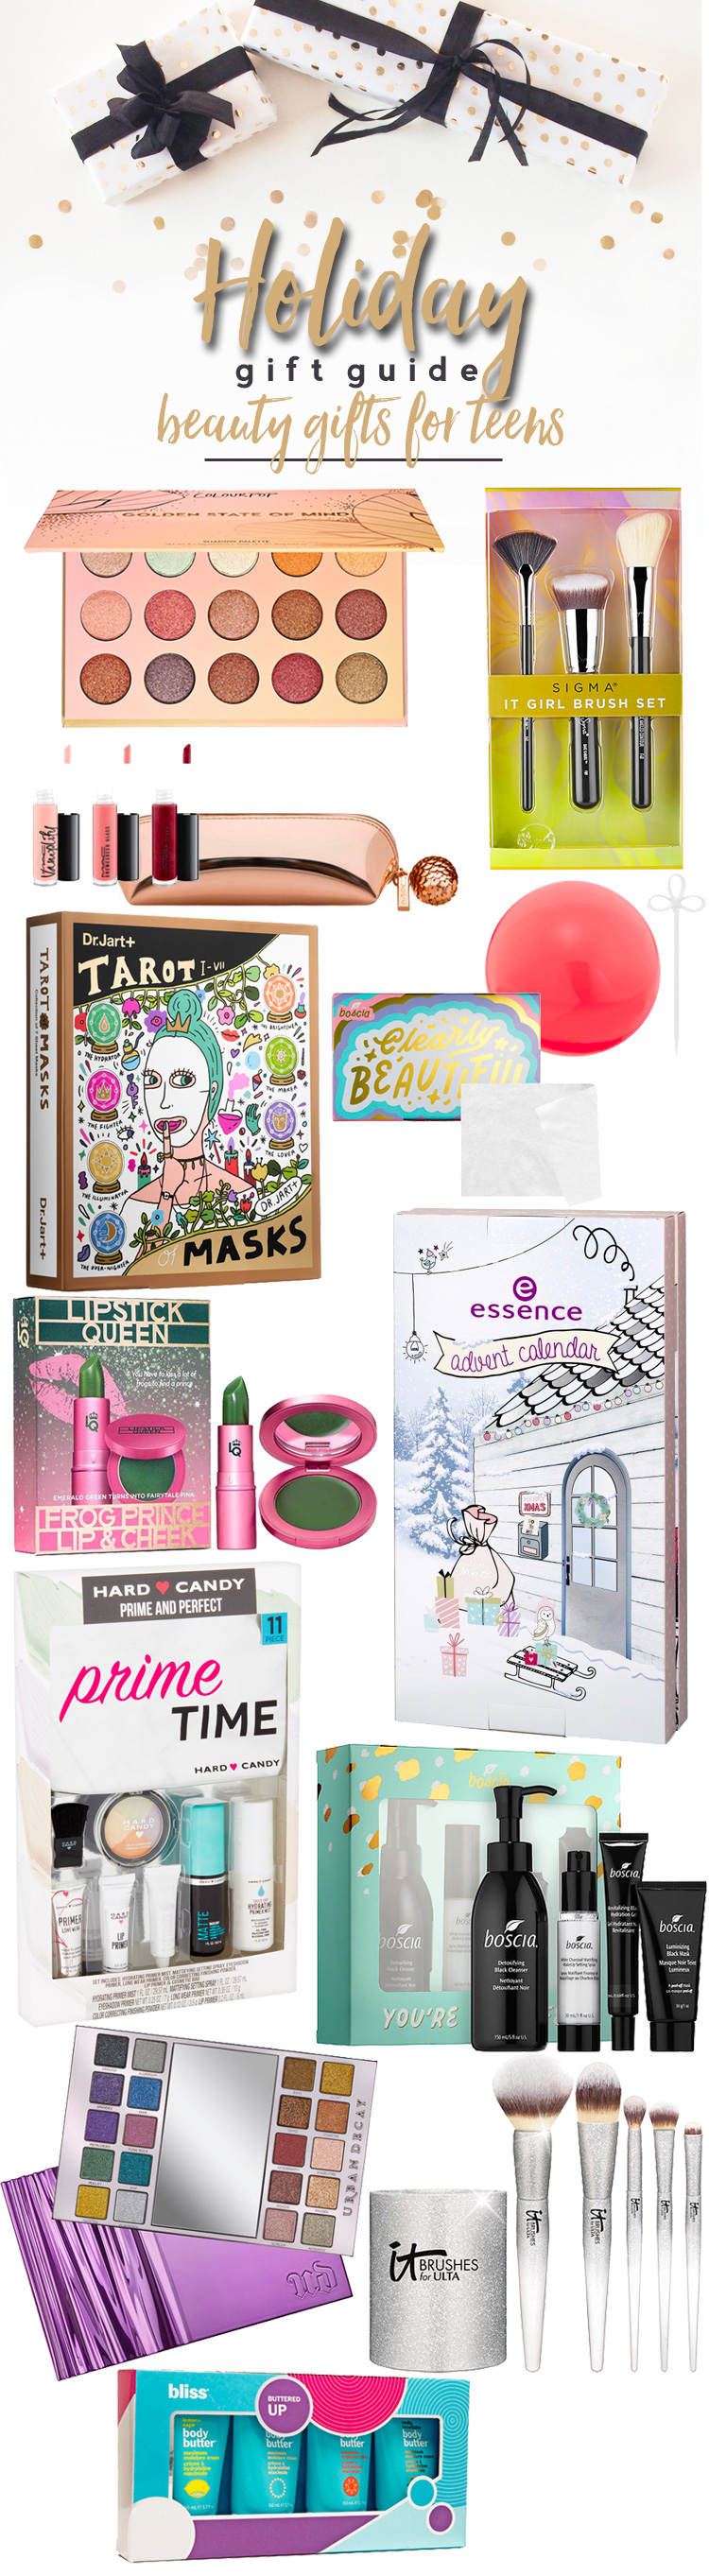 Holiday Gift Guide 2017: Best Beauty Gifts for Teens